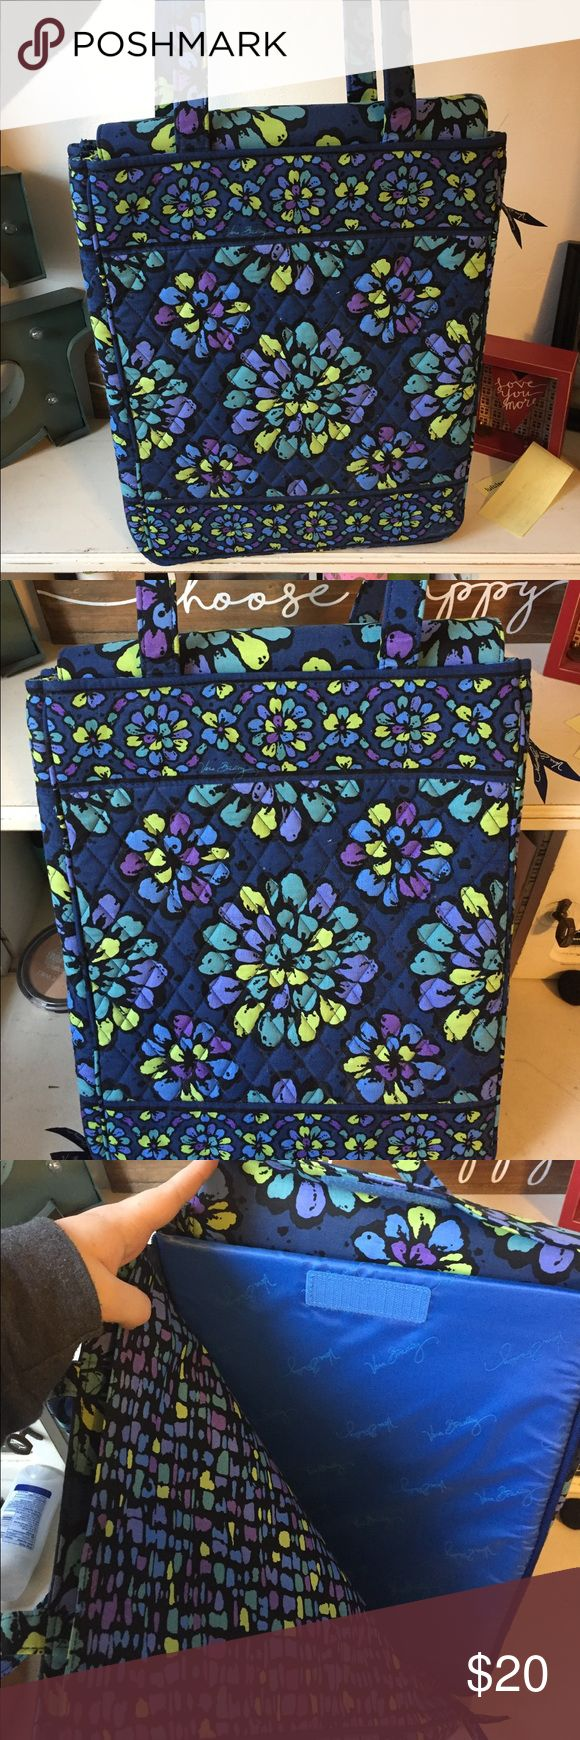 NWOT Vera Bradley laptop bag/purse! NWOT Vera Bradley laptop bag! Protective pocket to store a laptop and other pockets as well! Never used! In perfect condition! vera bradley Bags Laptop Bags